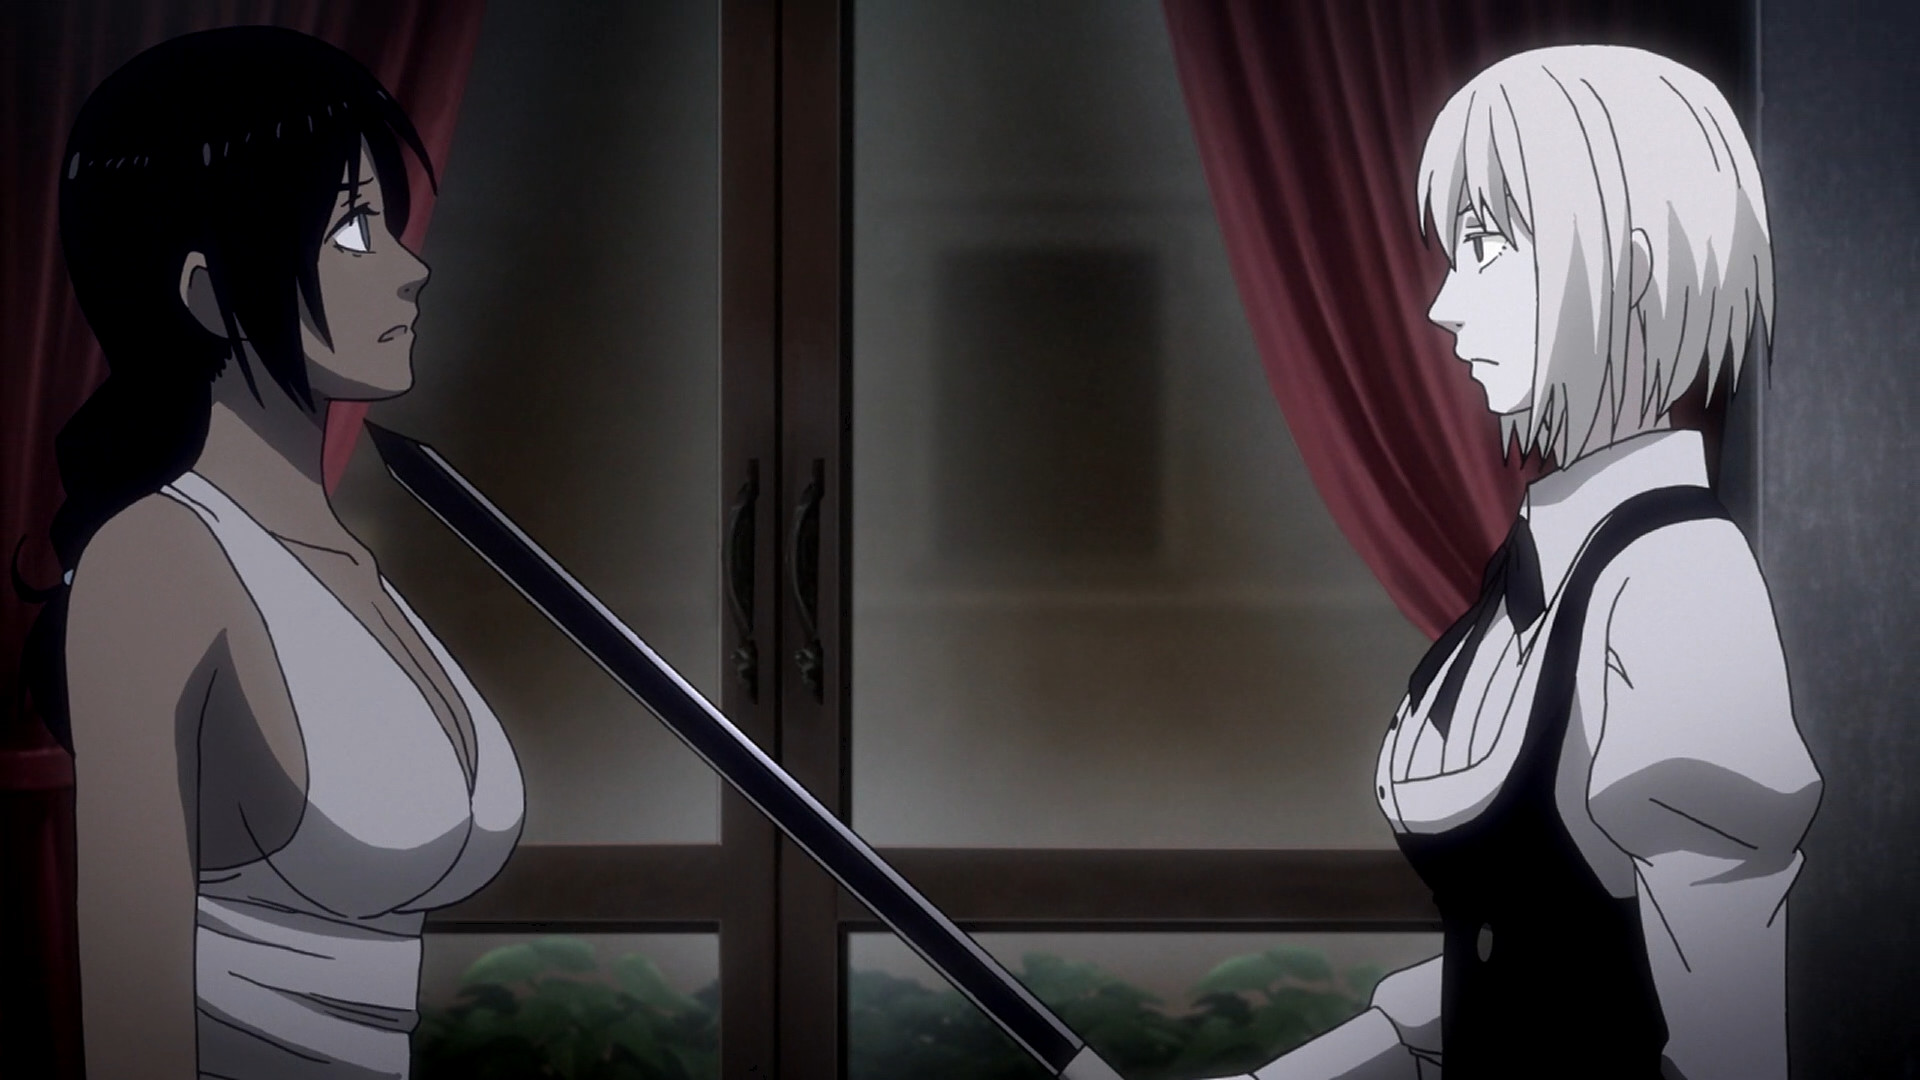 [Spoilers] Gangsta. – Episode 9 [Discussion] : anime